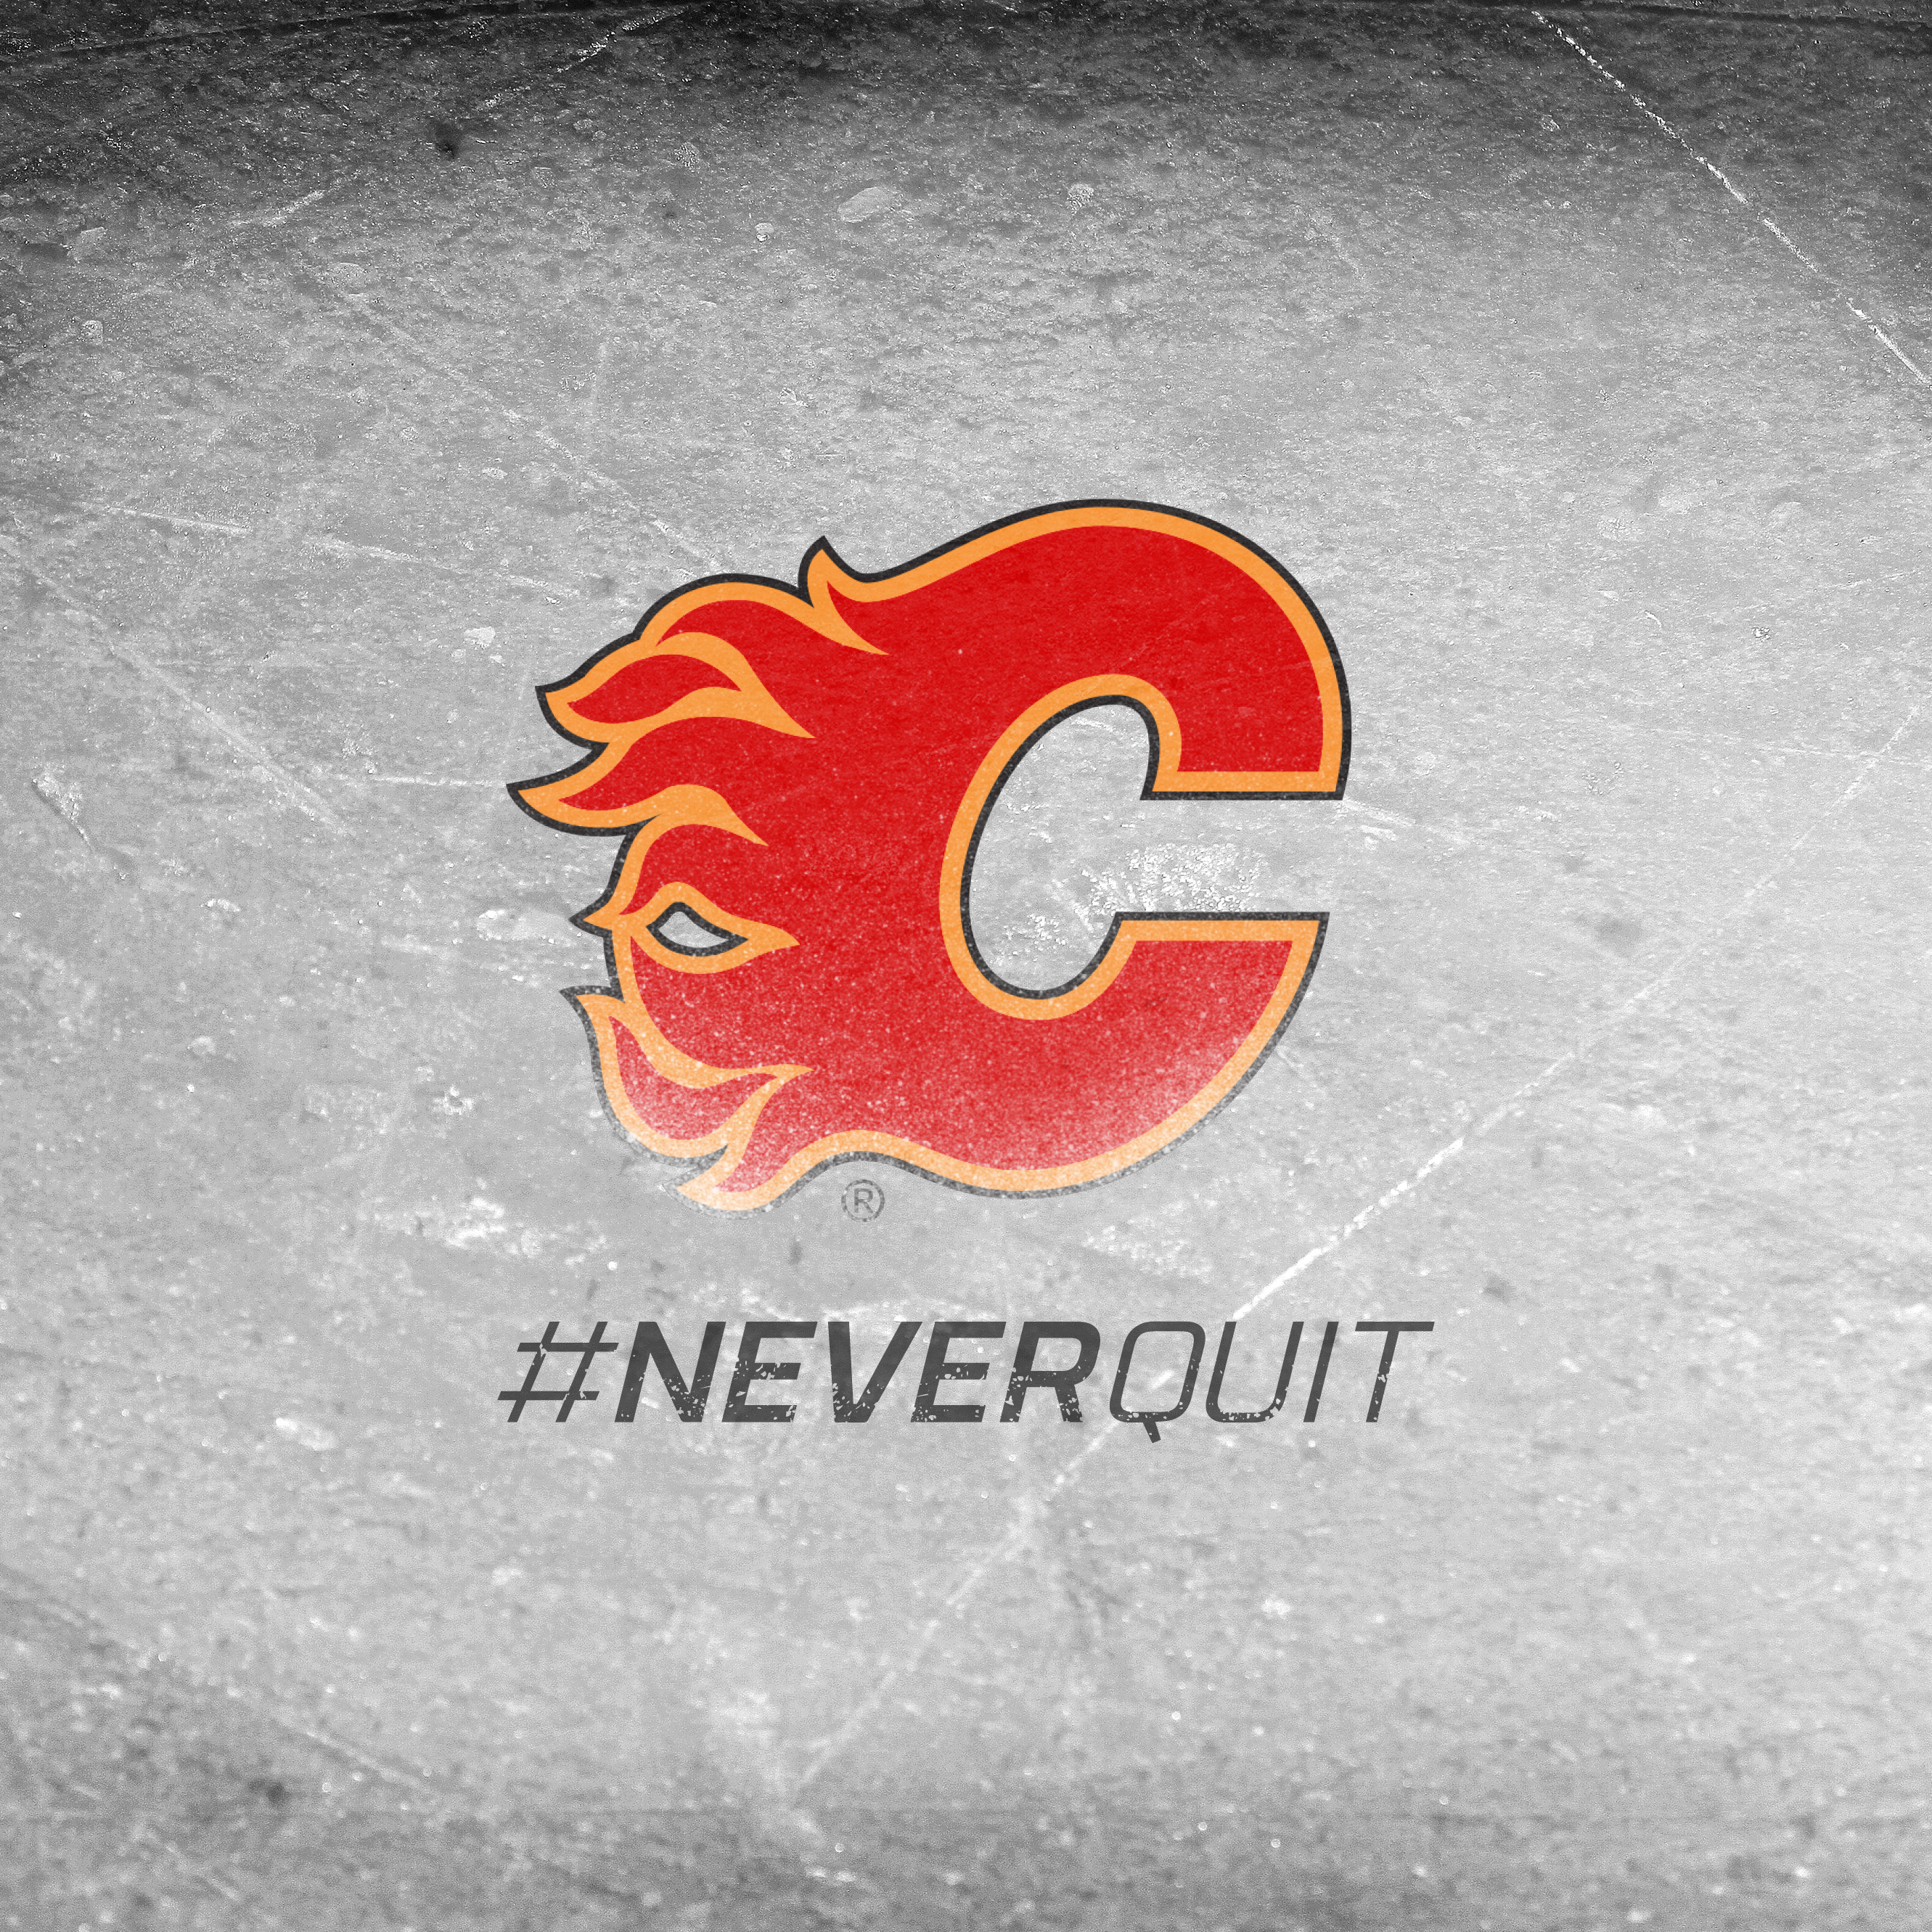 Calgary Flames Wallpaper   Calgary Flames   Multimedia 2662x2662